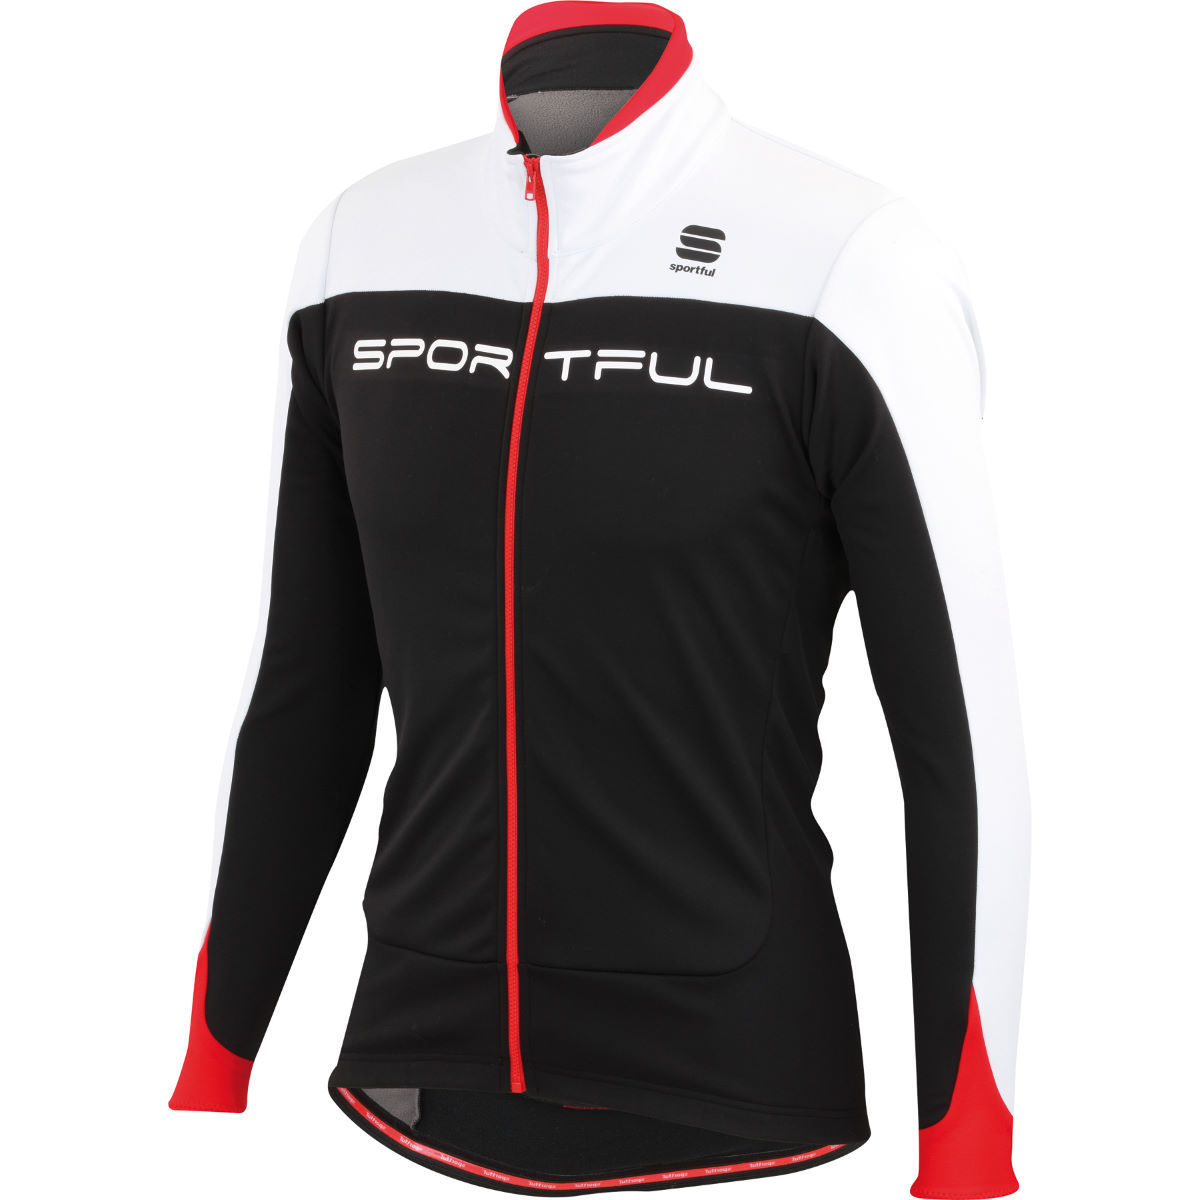 Veste Sportful Flash Softshell - S Black/White/Red Coupe-vents vélo